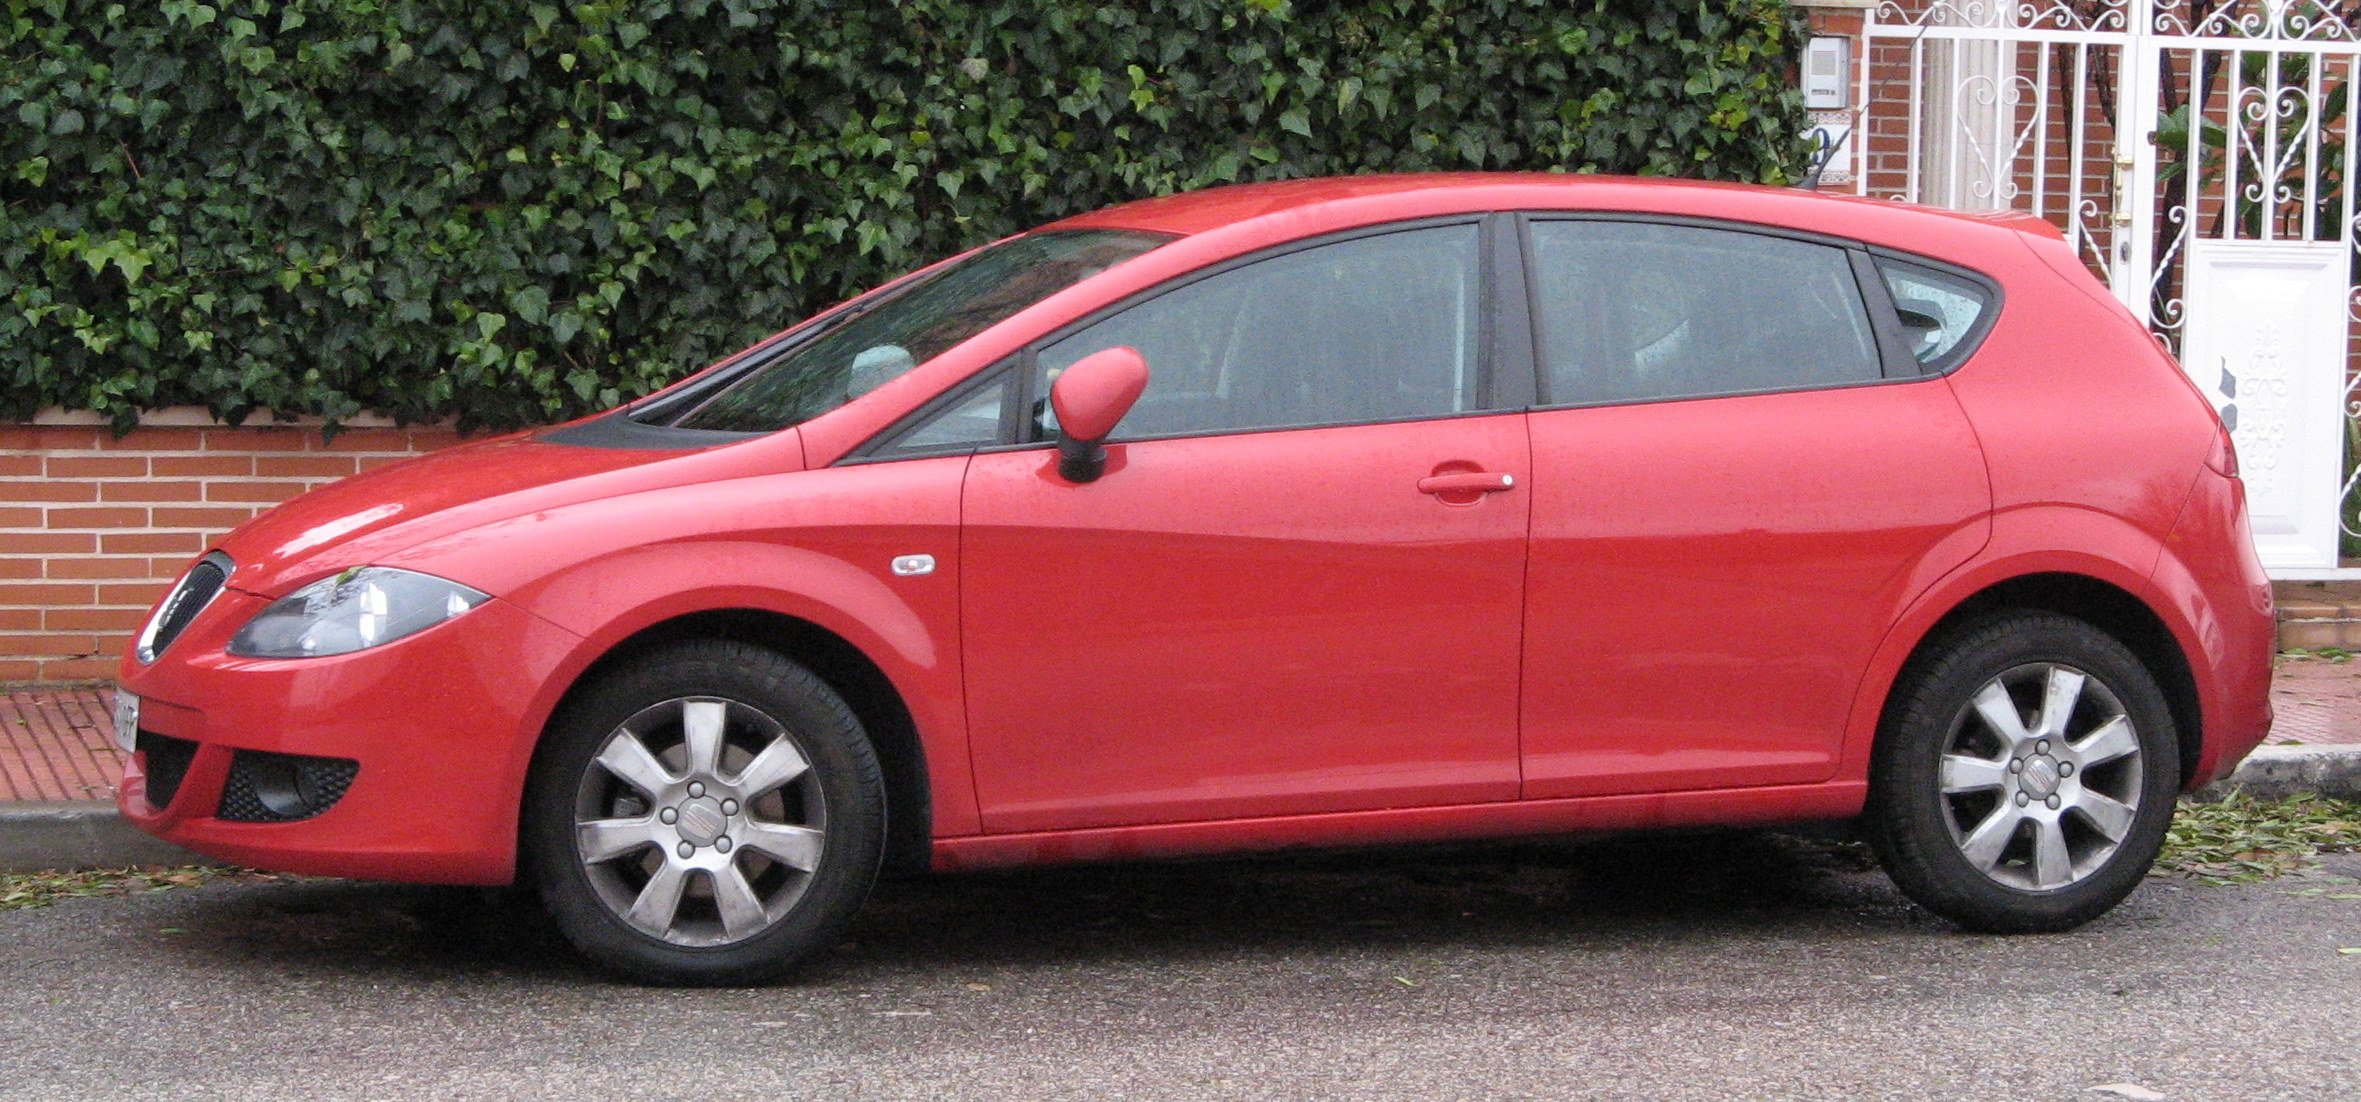 2007 seat leon ii 1p pictures information and specs auto. Black Bedroom Furniture Sets. Home Design Ideas